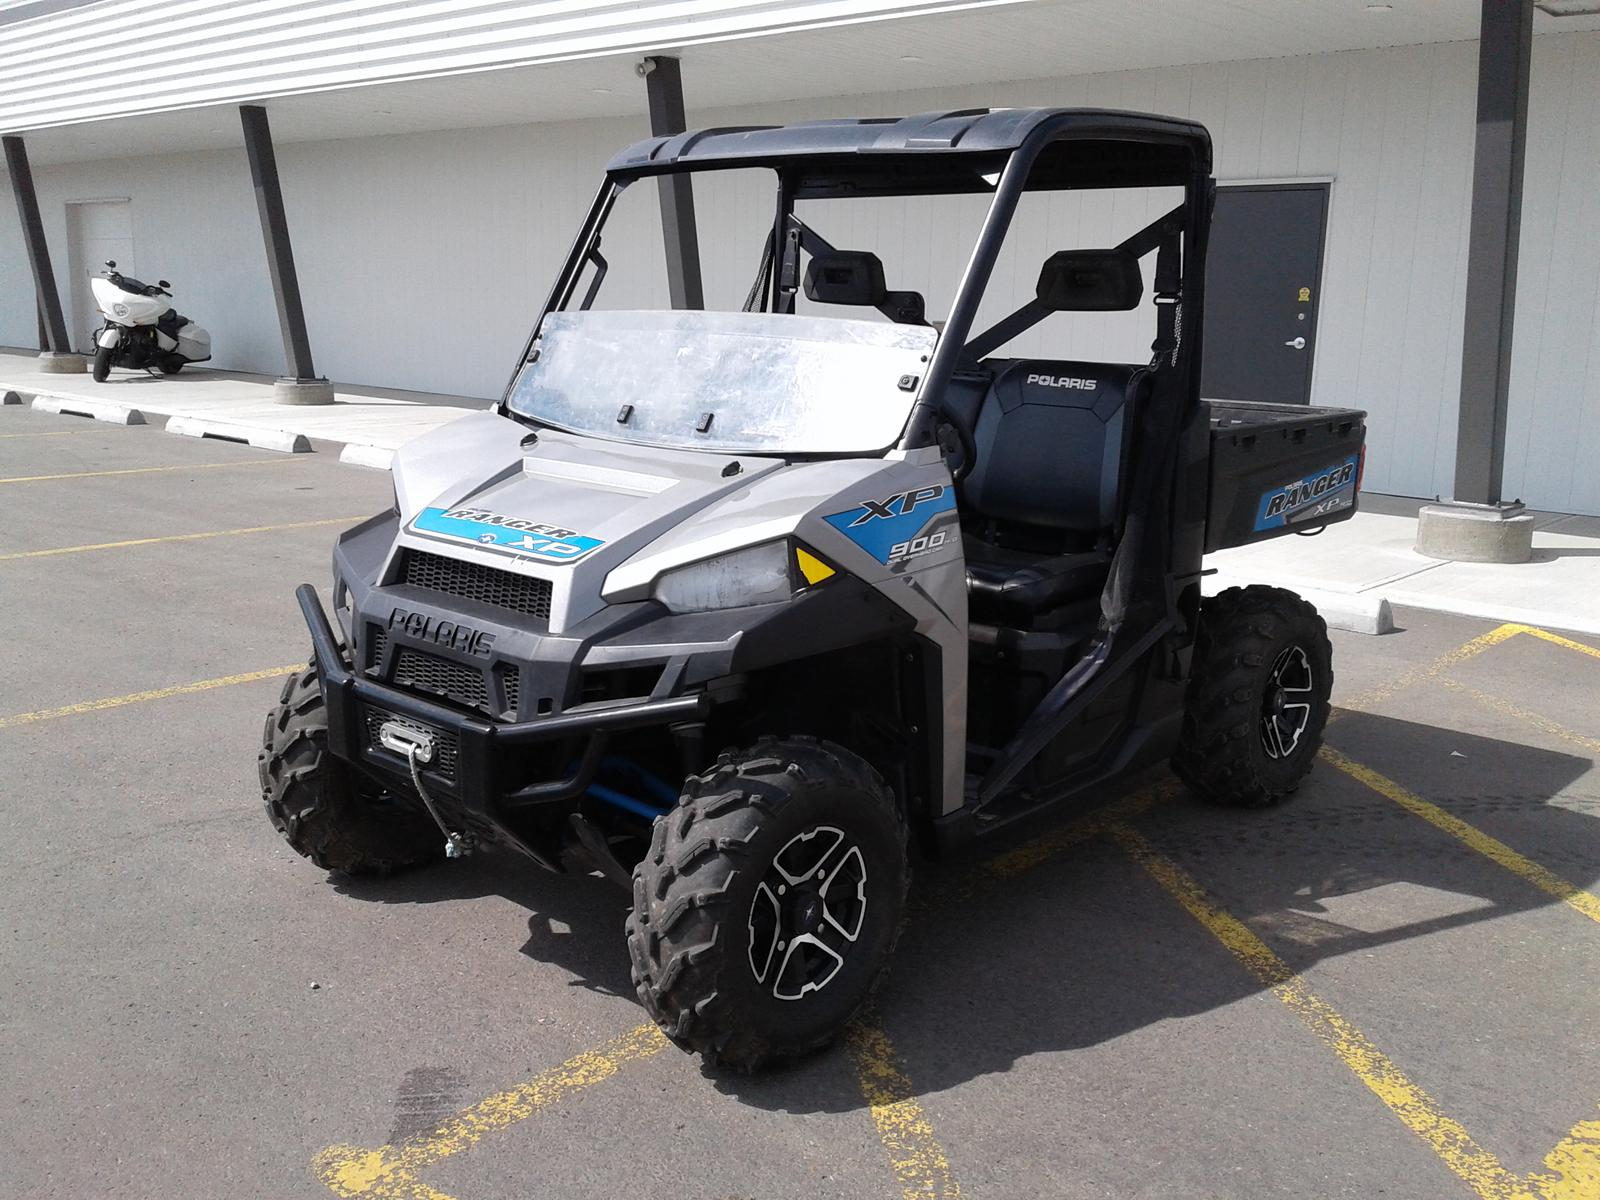 Inventory PARKLAND SLED & ATV Red Deer County, AB (403) 346-7838